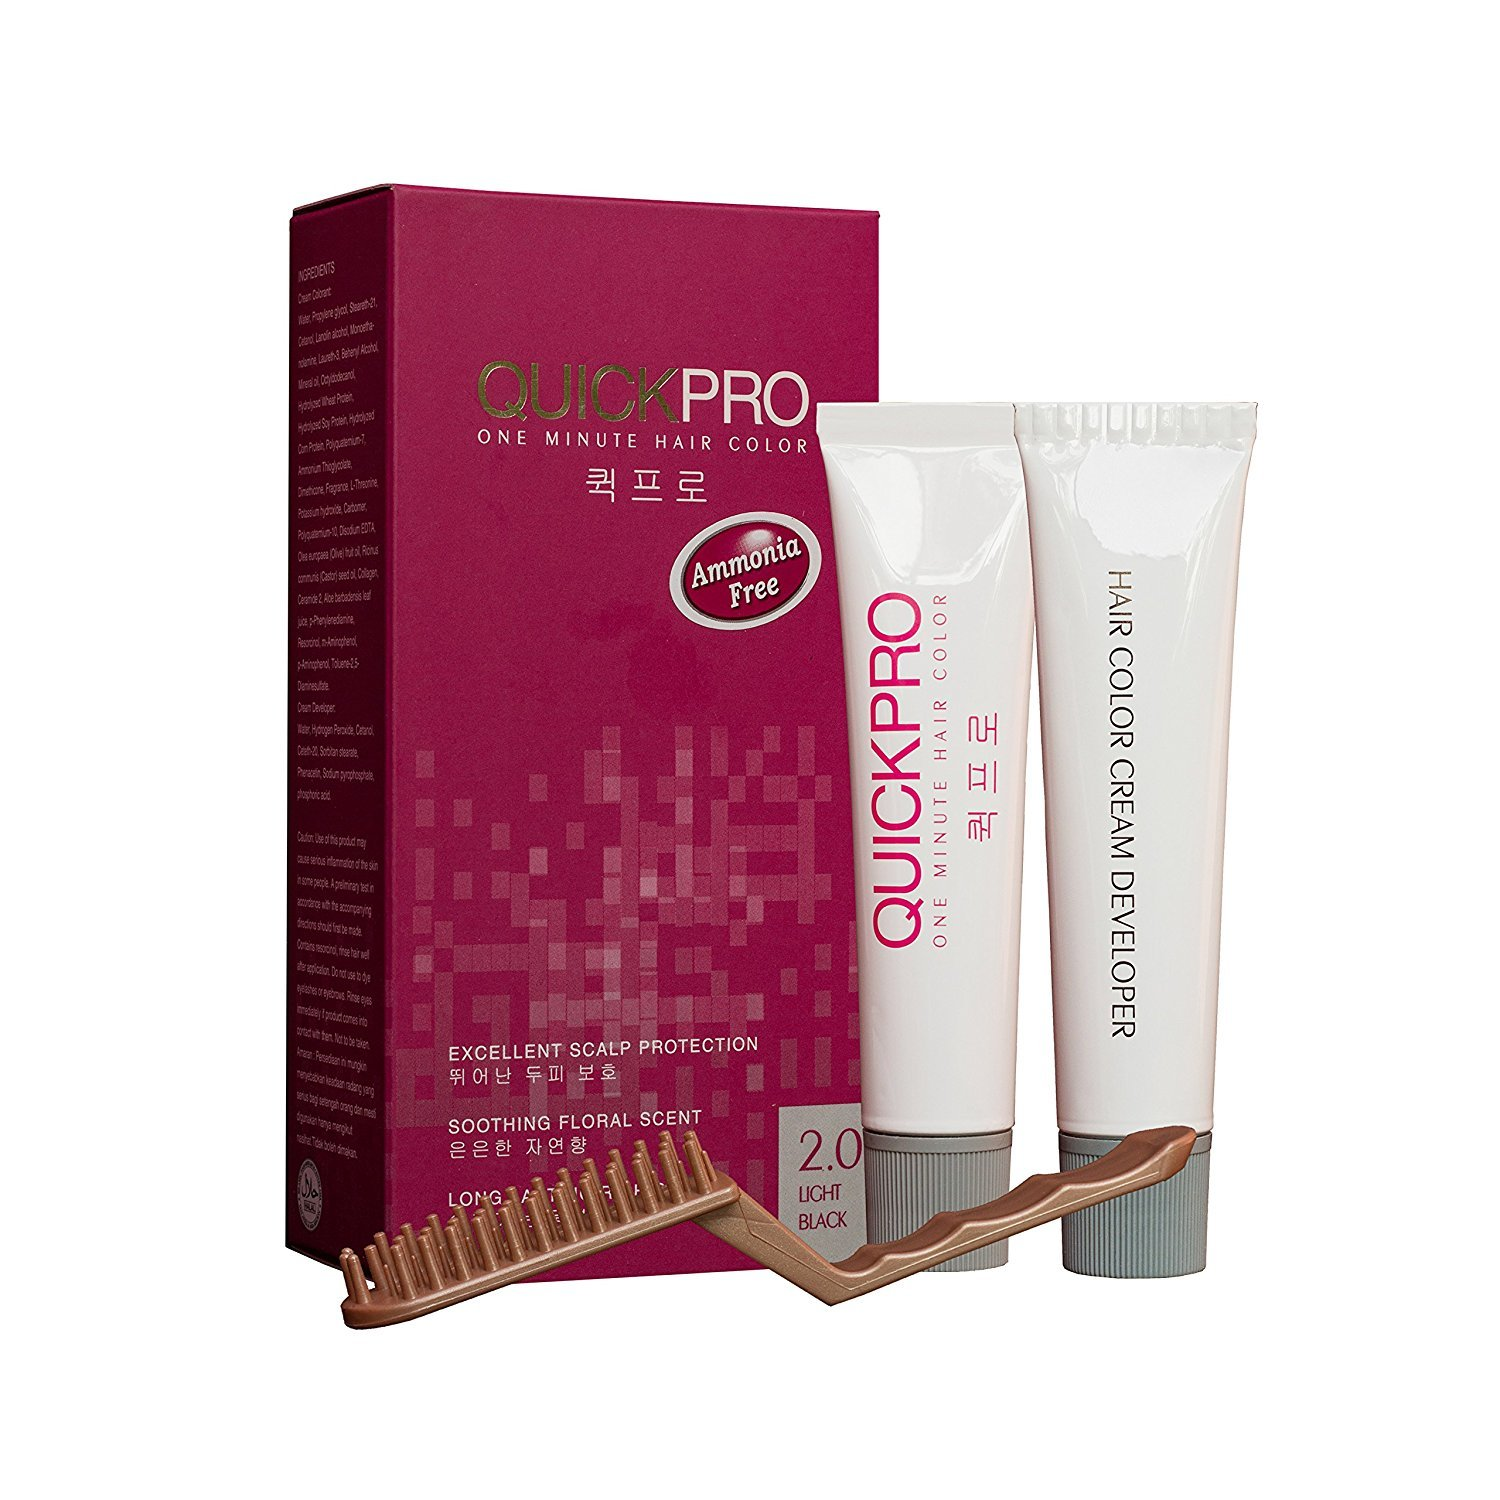 QuickPro Permanent Hair Color, 4.0 Medium Brown, Ammonia Free Medium Brown Color Nourishing Hair Color Creme